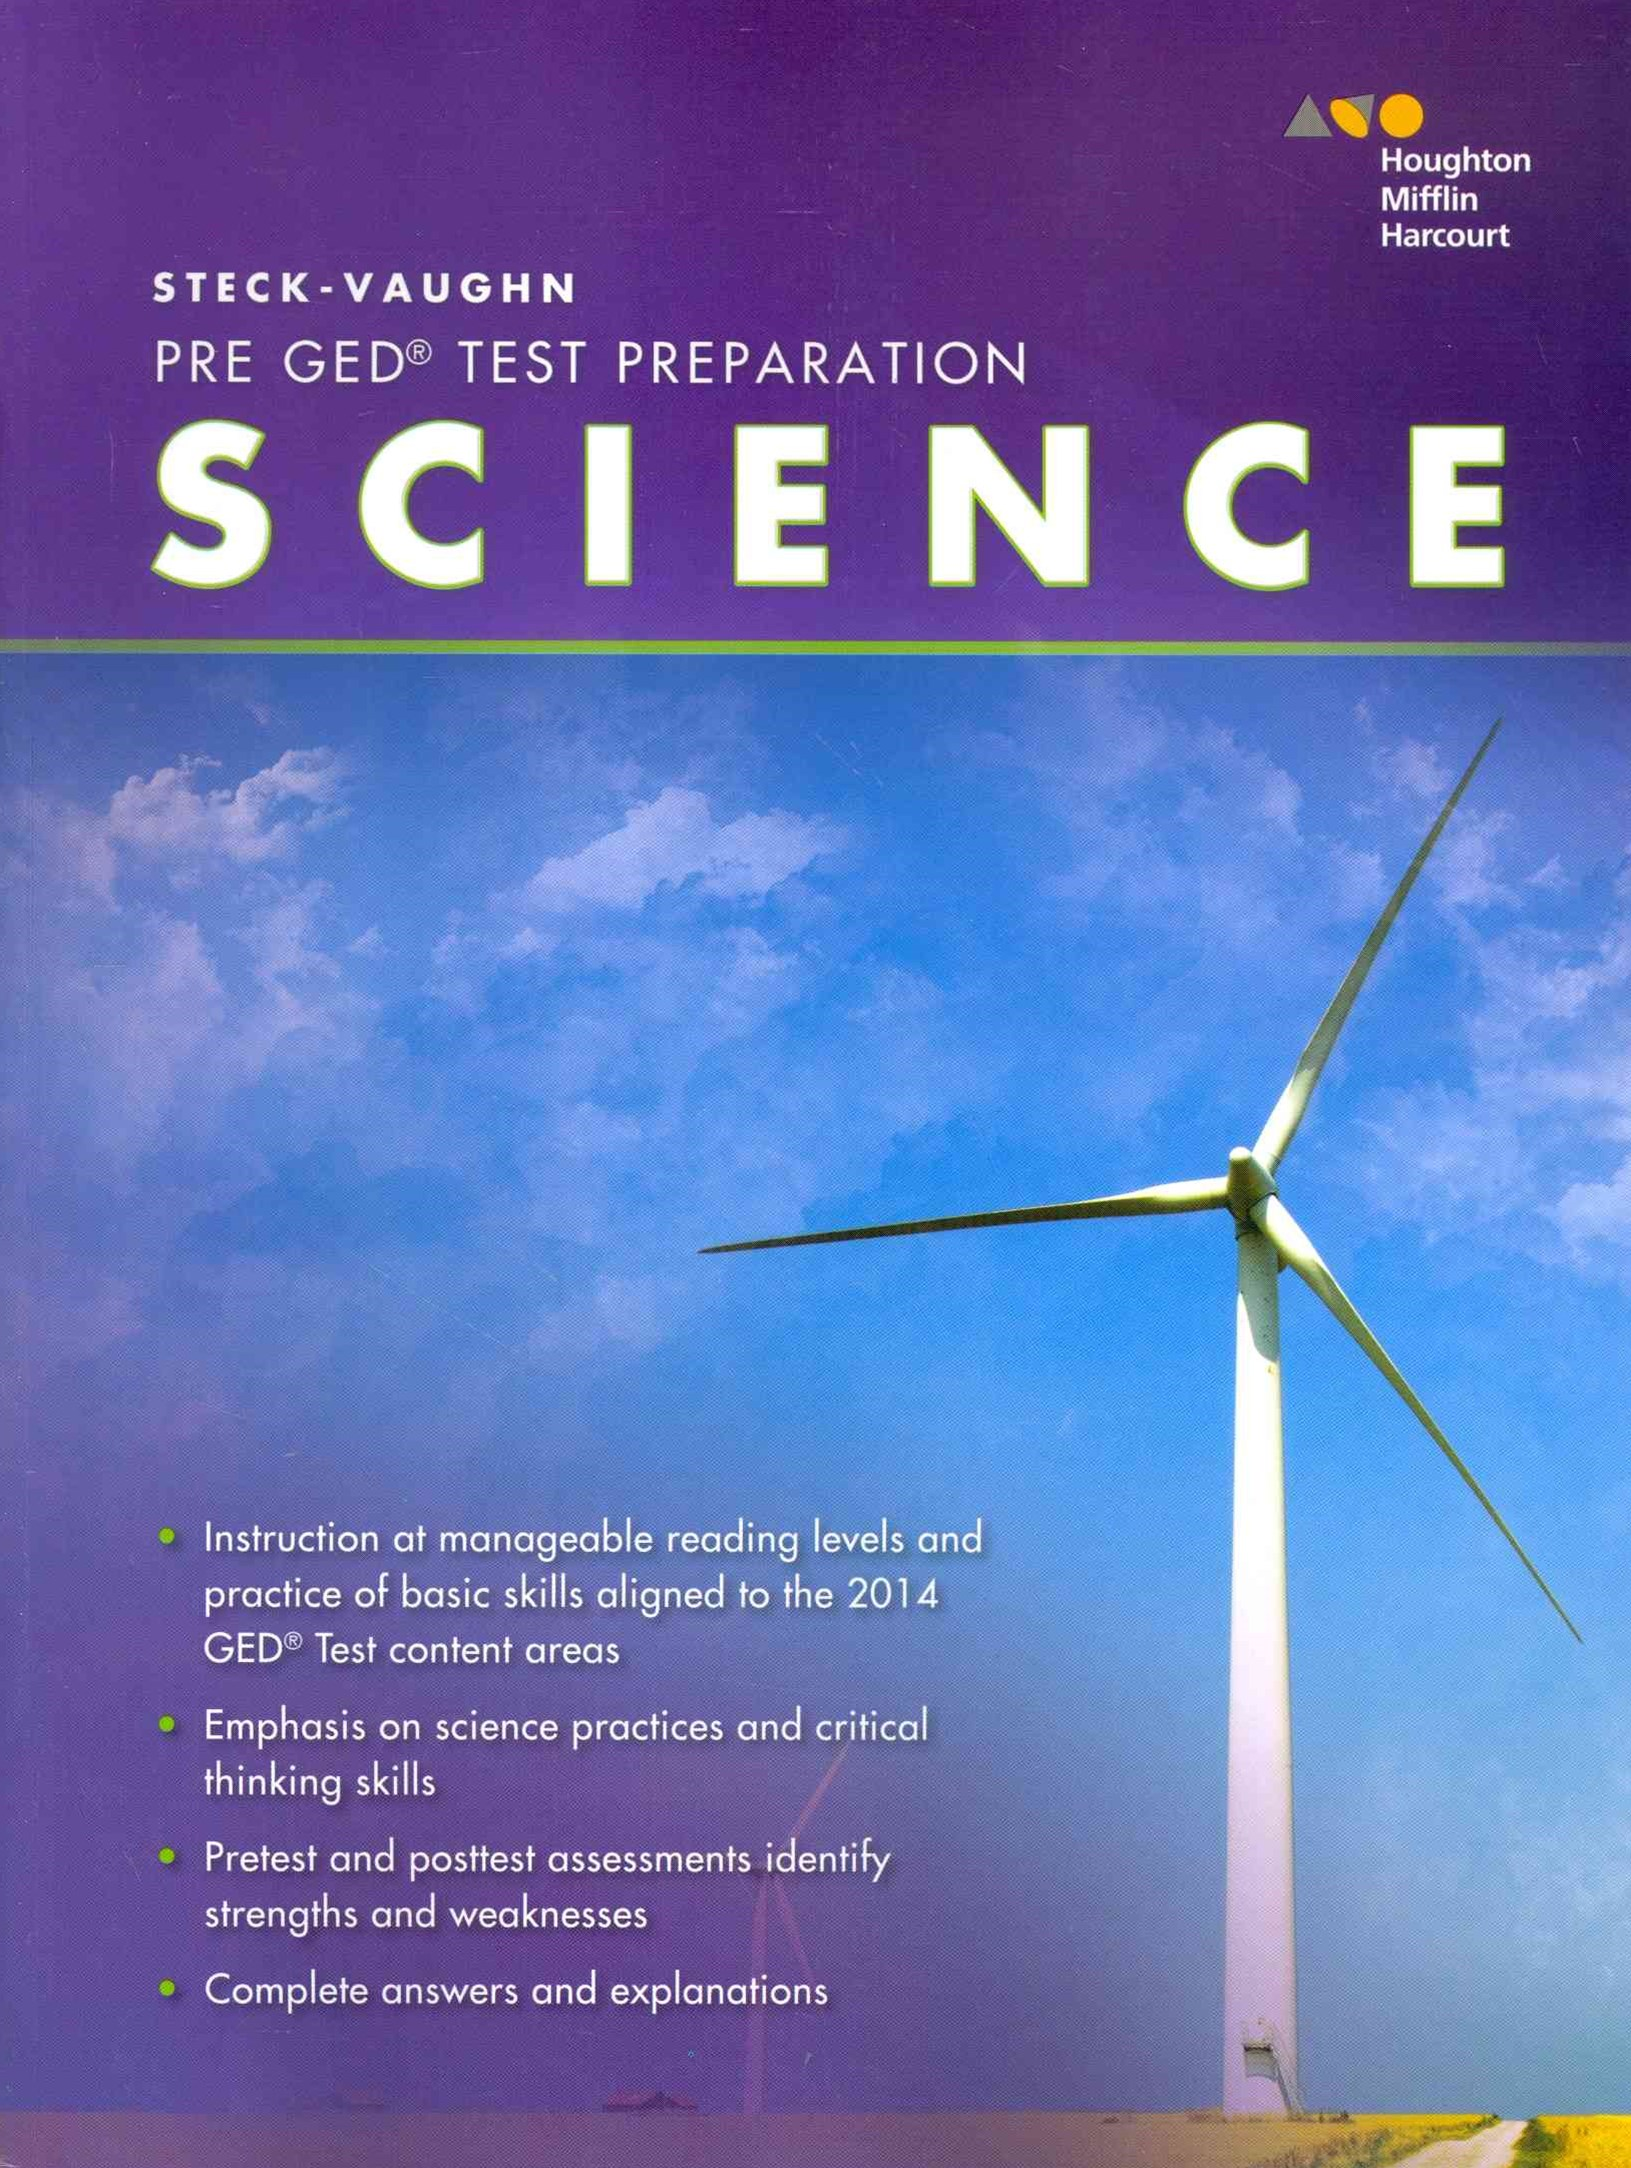 Steck-Vaughn Pre-GED Test Preparation